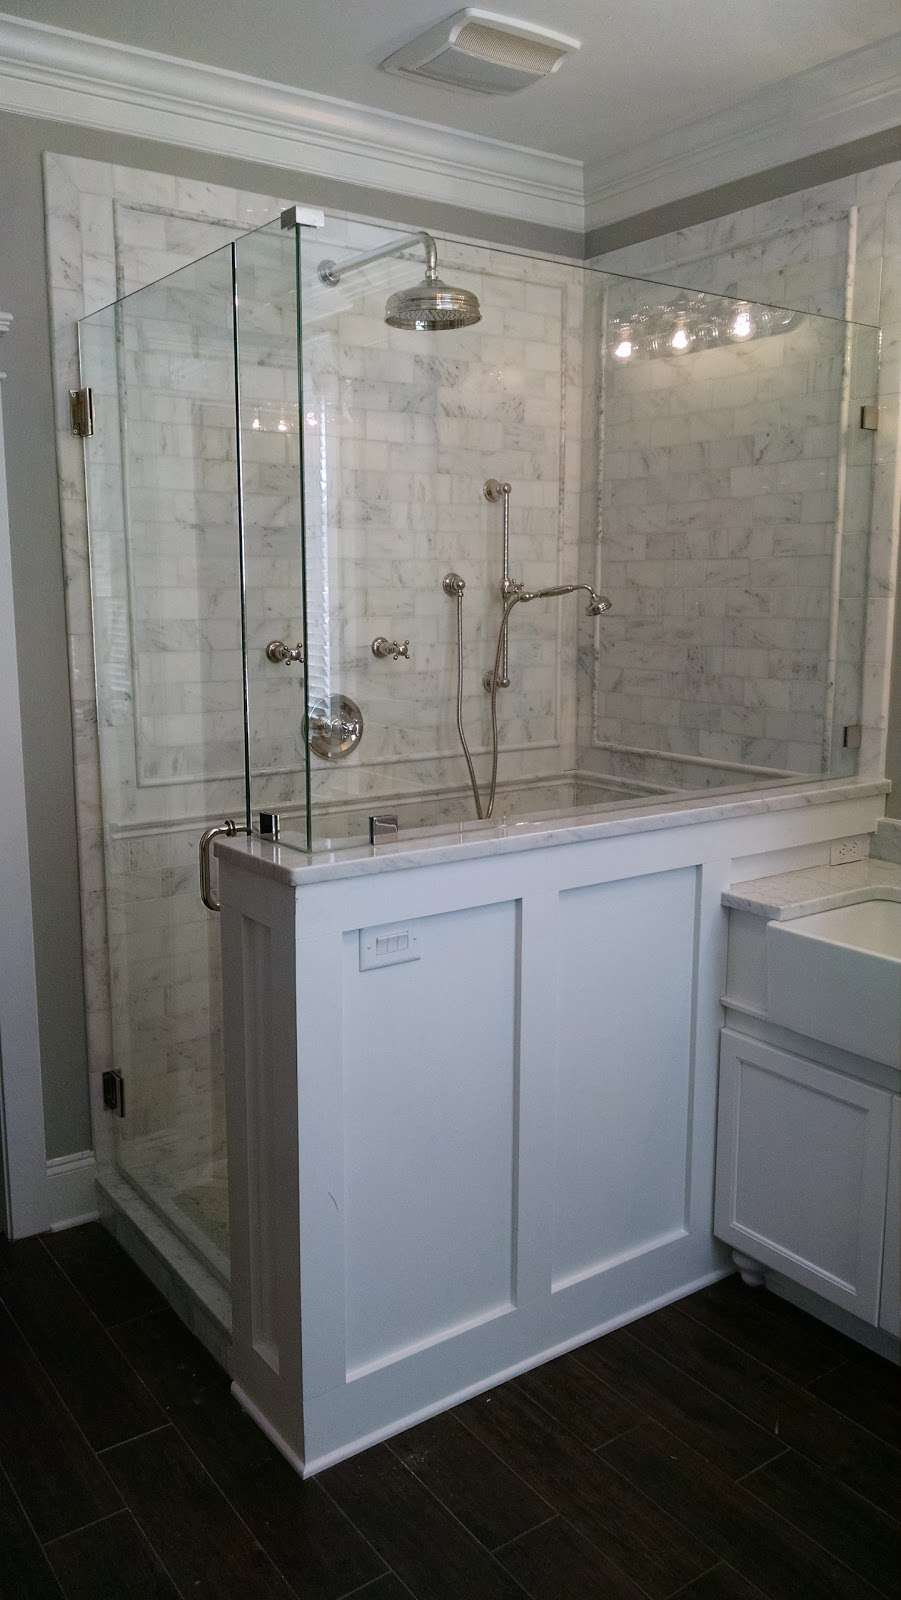 Iredell Glass & Mirror Inc -   | Photo 7 of 10 | Address: 1308 Barkley Rd N, Statesville, NC 28677, USA | Phone: (704) 872-8821